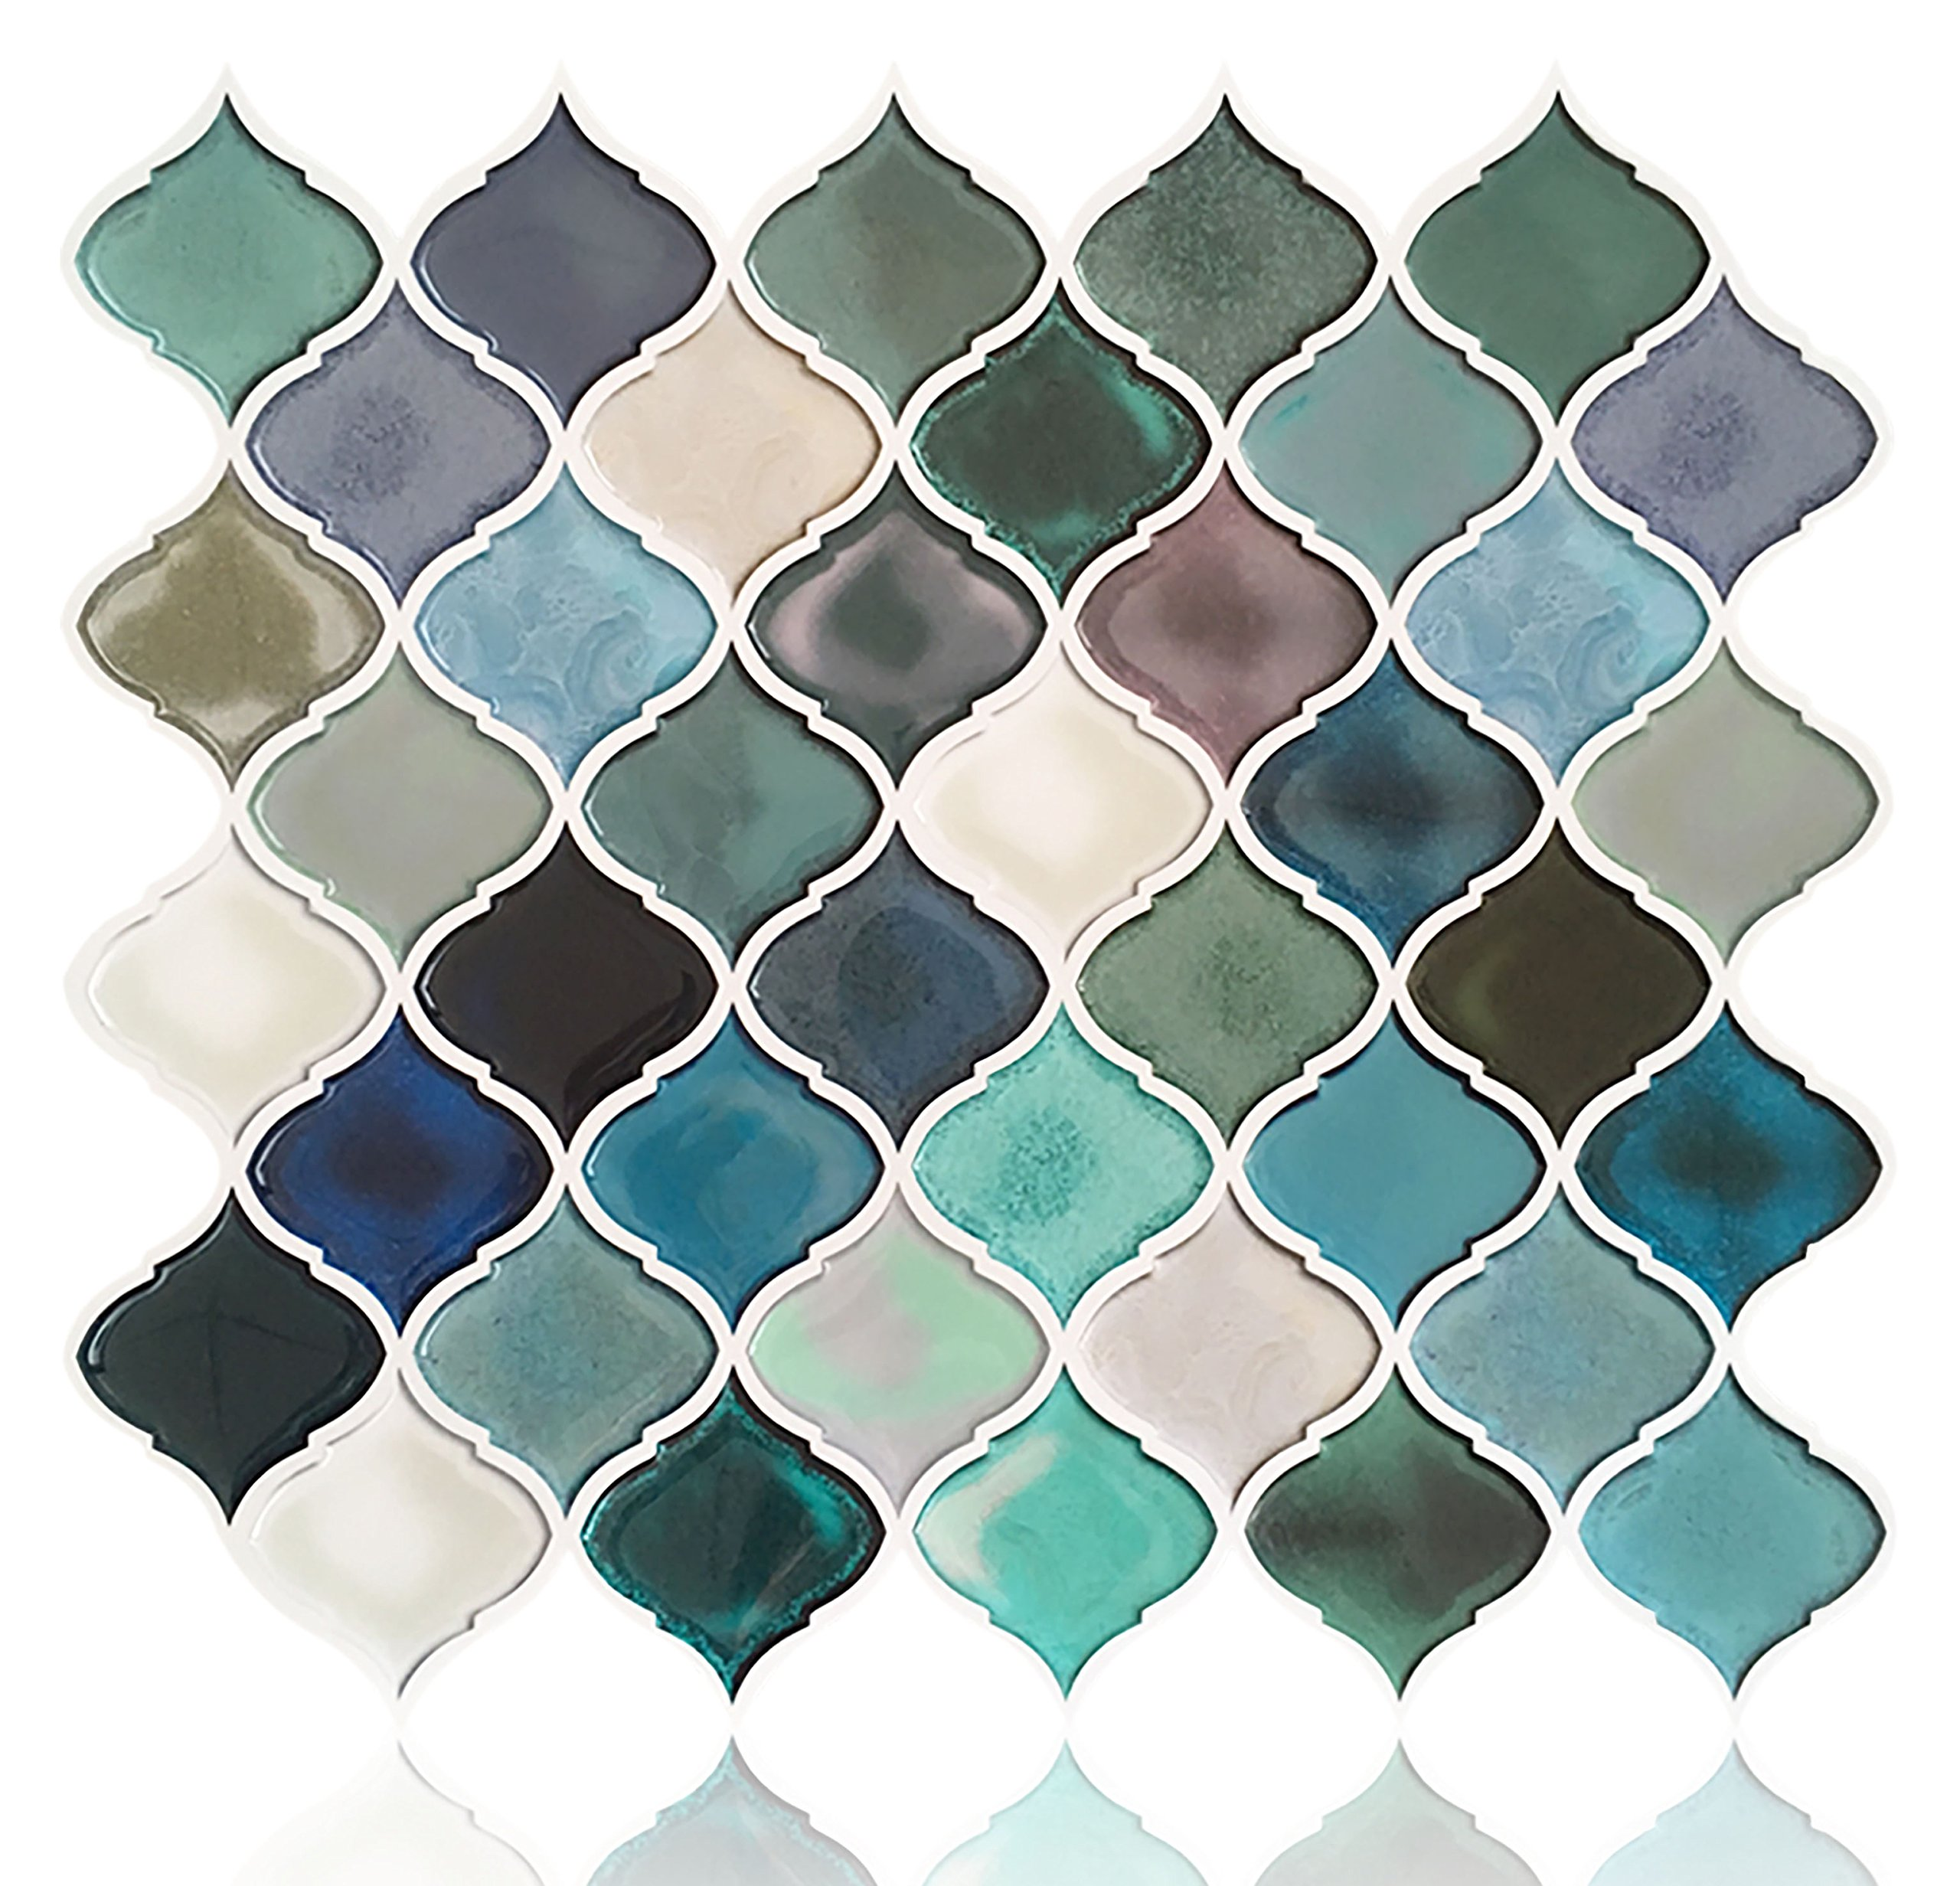 Peel and Stick Tile Backsplash for Kitchen Bathroom,Teal Arabesque Tile Backsplash,Mosaic Backsplash Sticker,5 Sheets